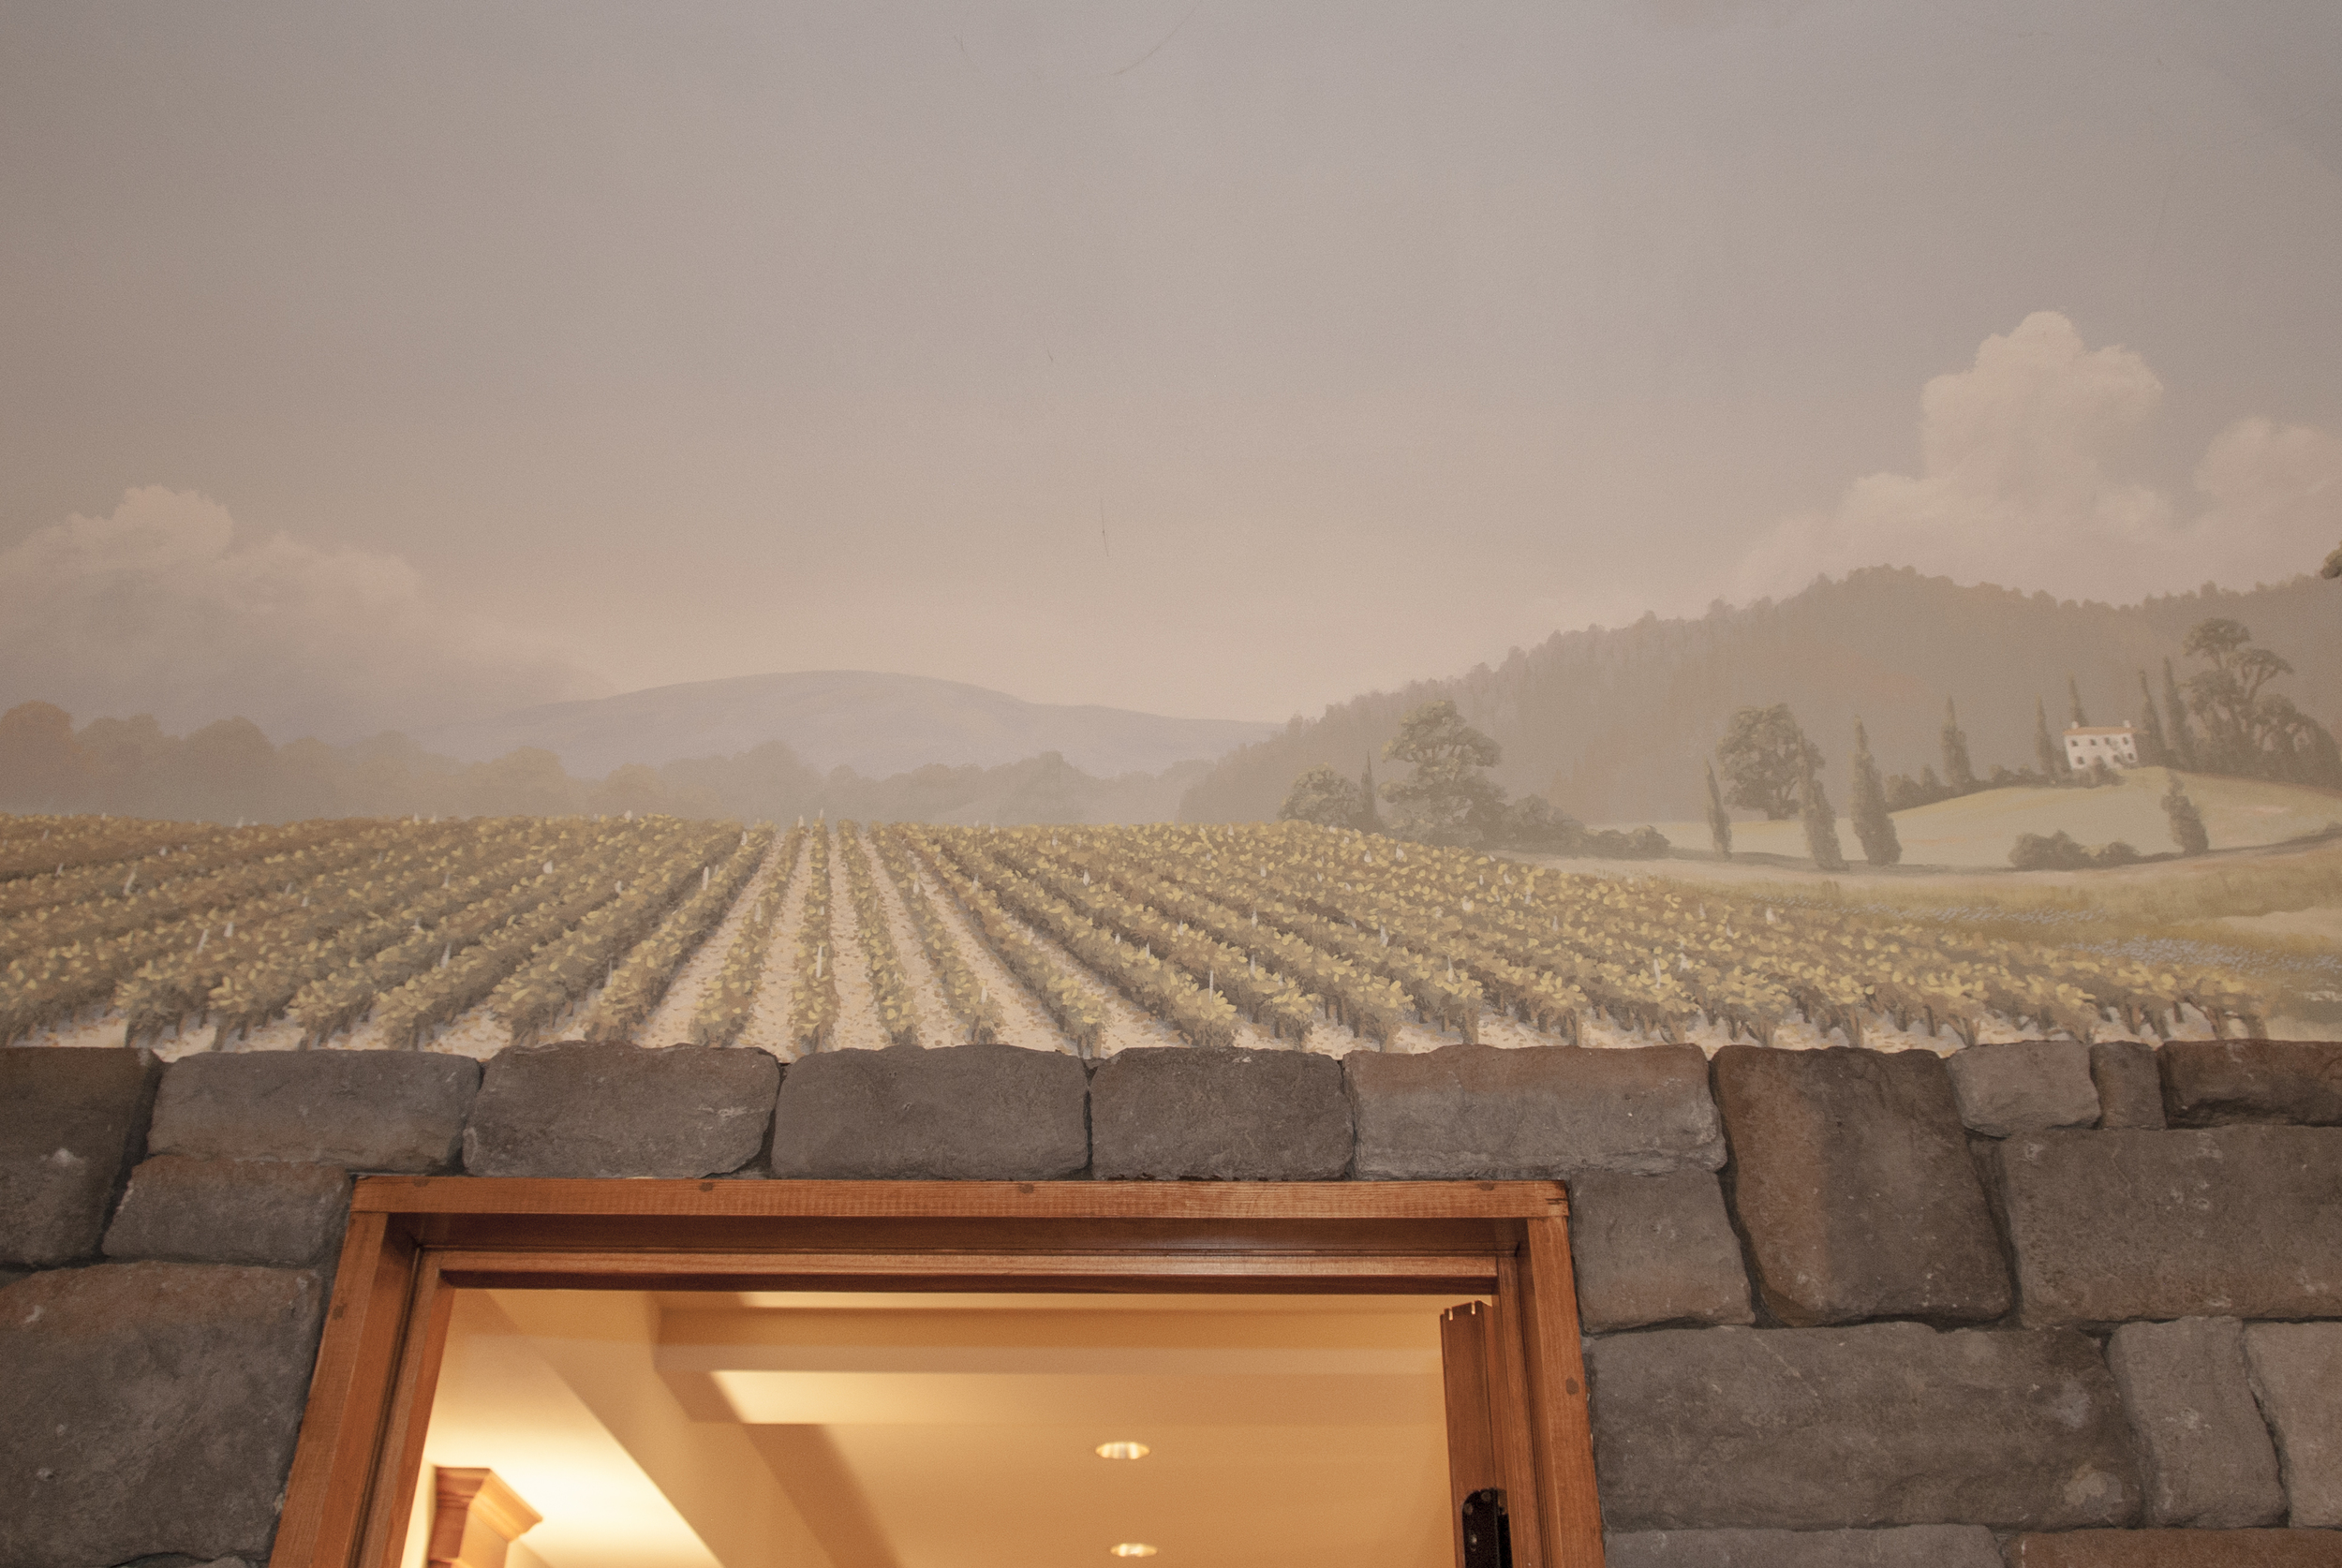 While he mural draws you in with stunning images of a Tuscan vineyard and countryside.